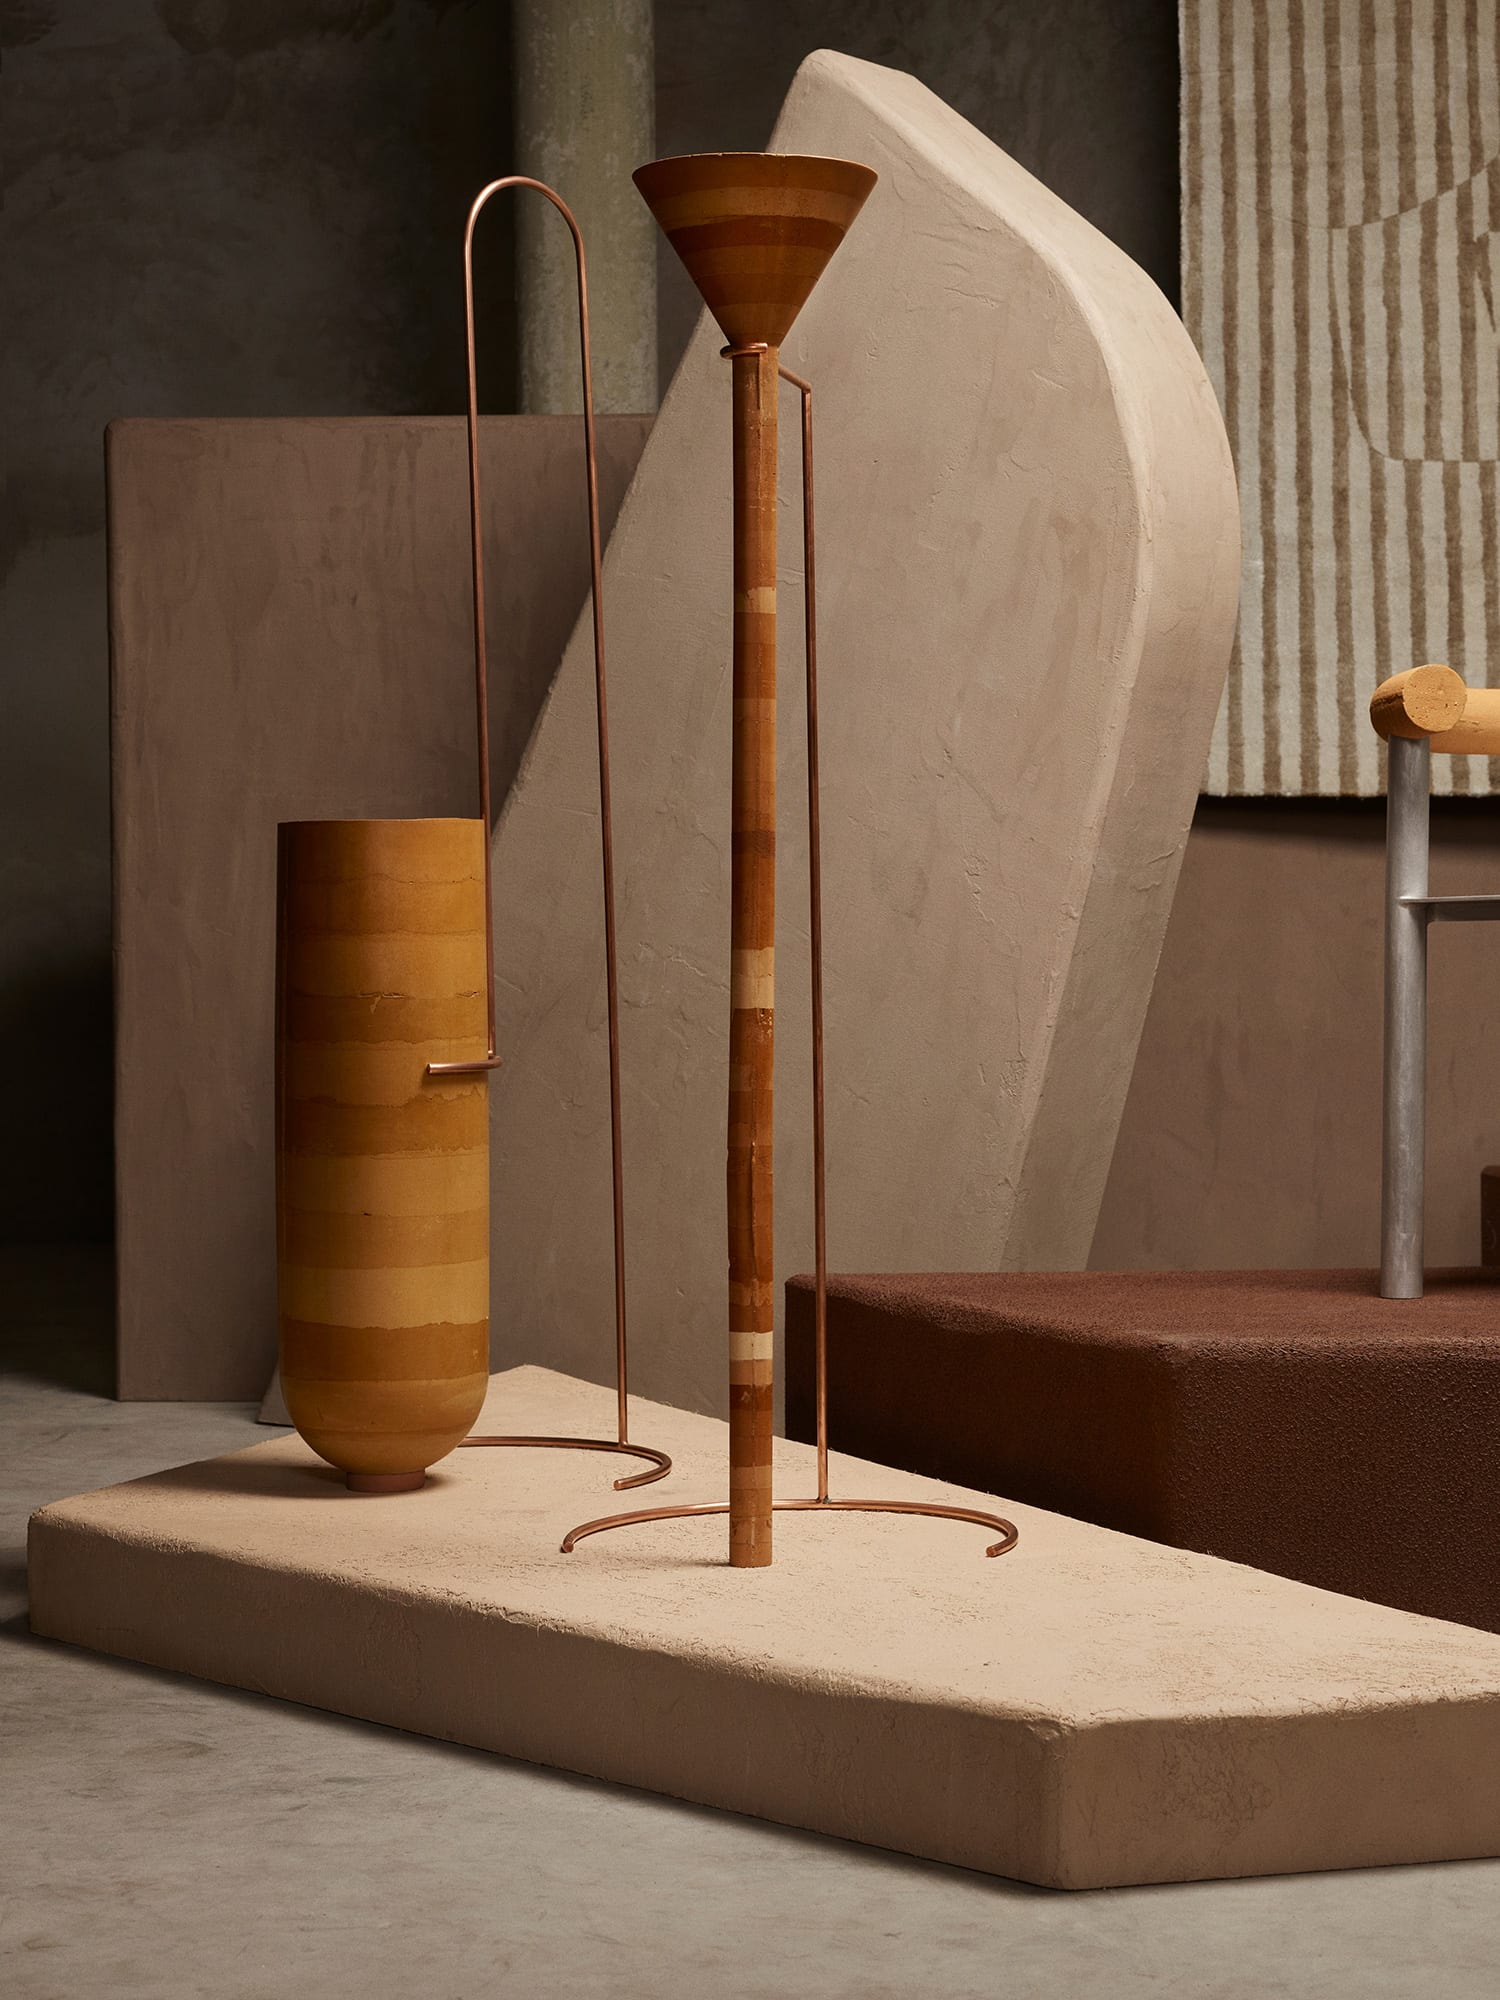 Collective Brut Explores Bodem Limited Edition Furniture Collection Nel Verbeke Photo Alexander Popelier Yellowtrace 01